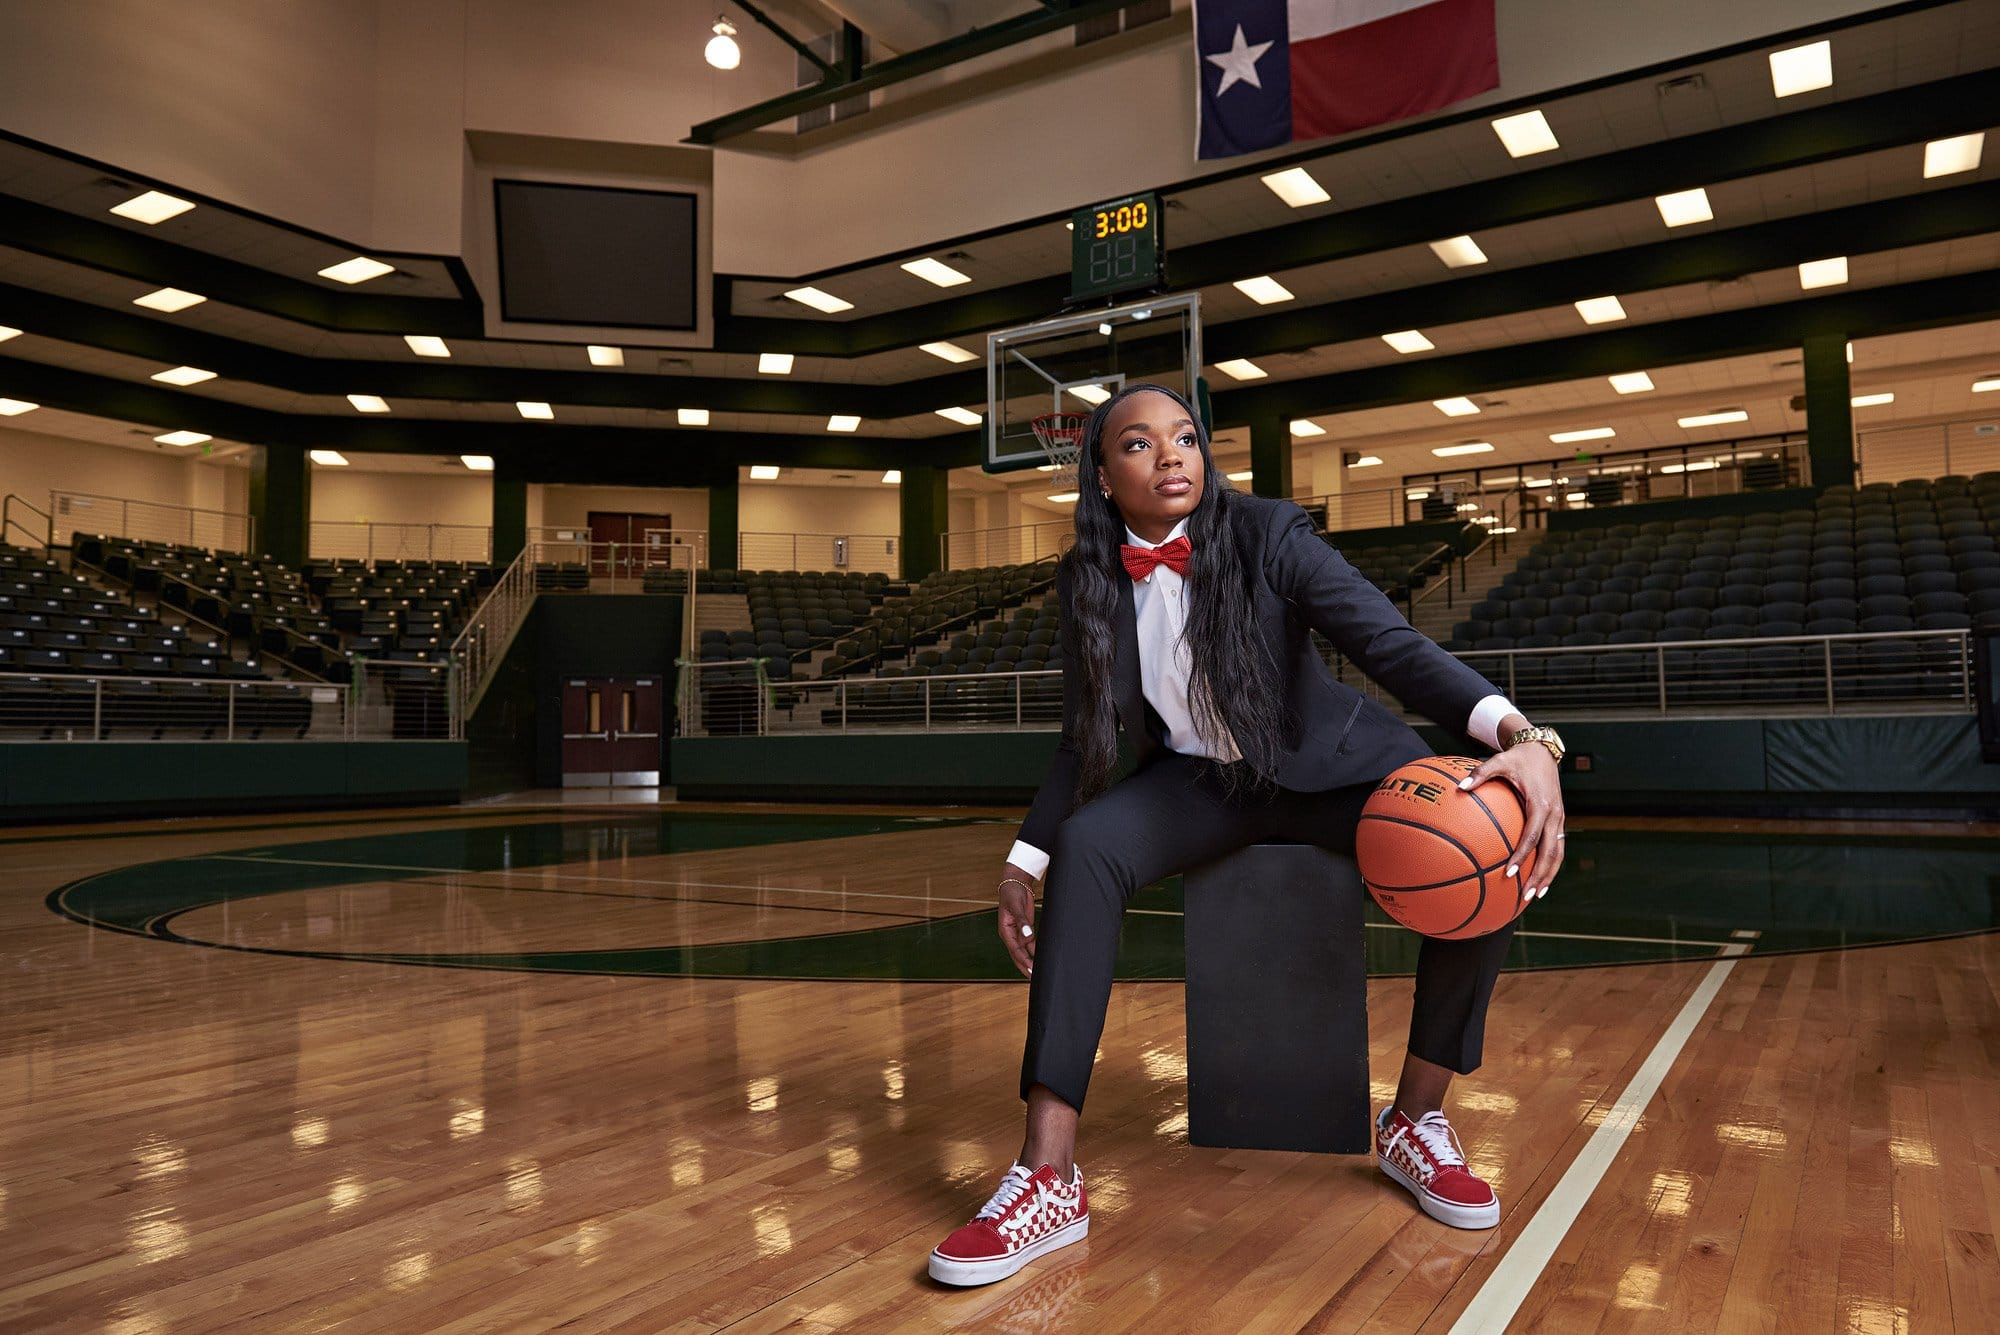 Dallas senior photos of prosper bastkeball star Jordyn Oliver by Photographer Jeff Dietz